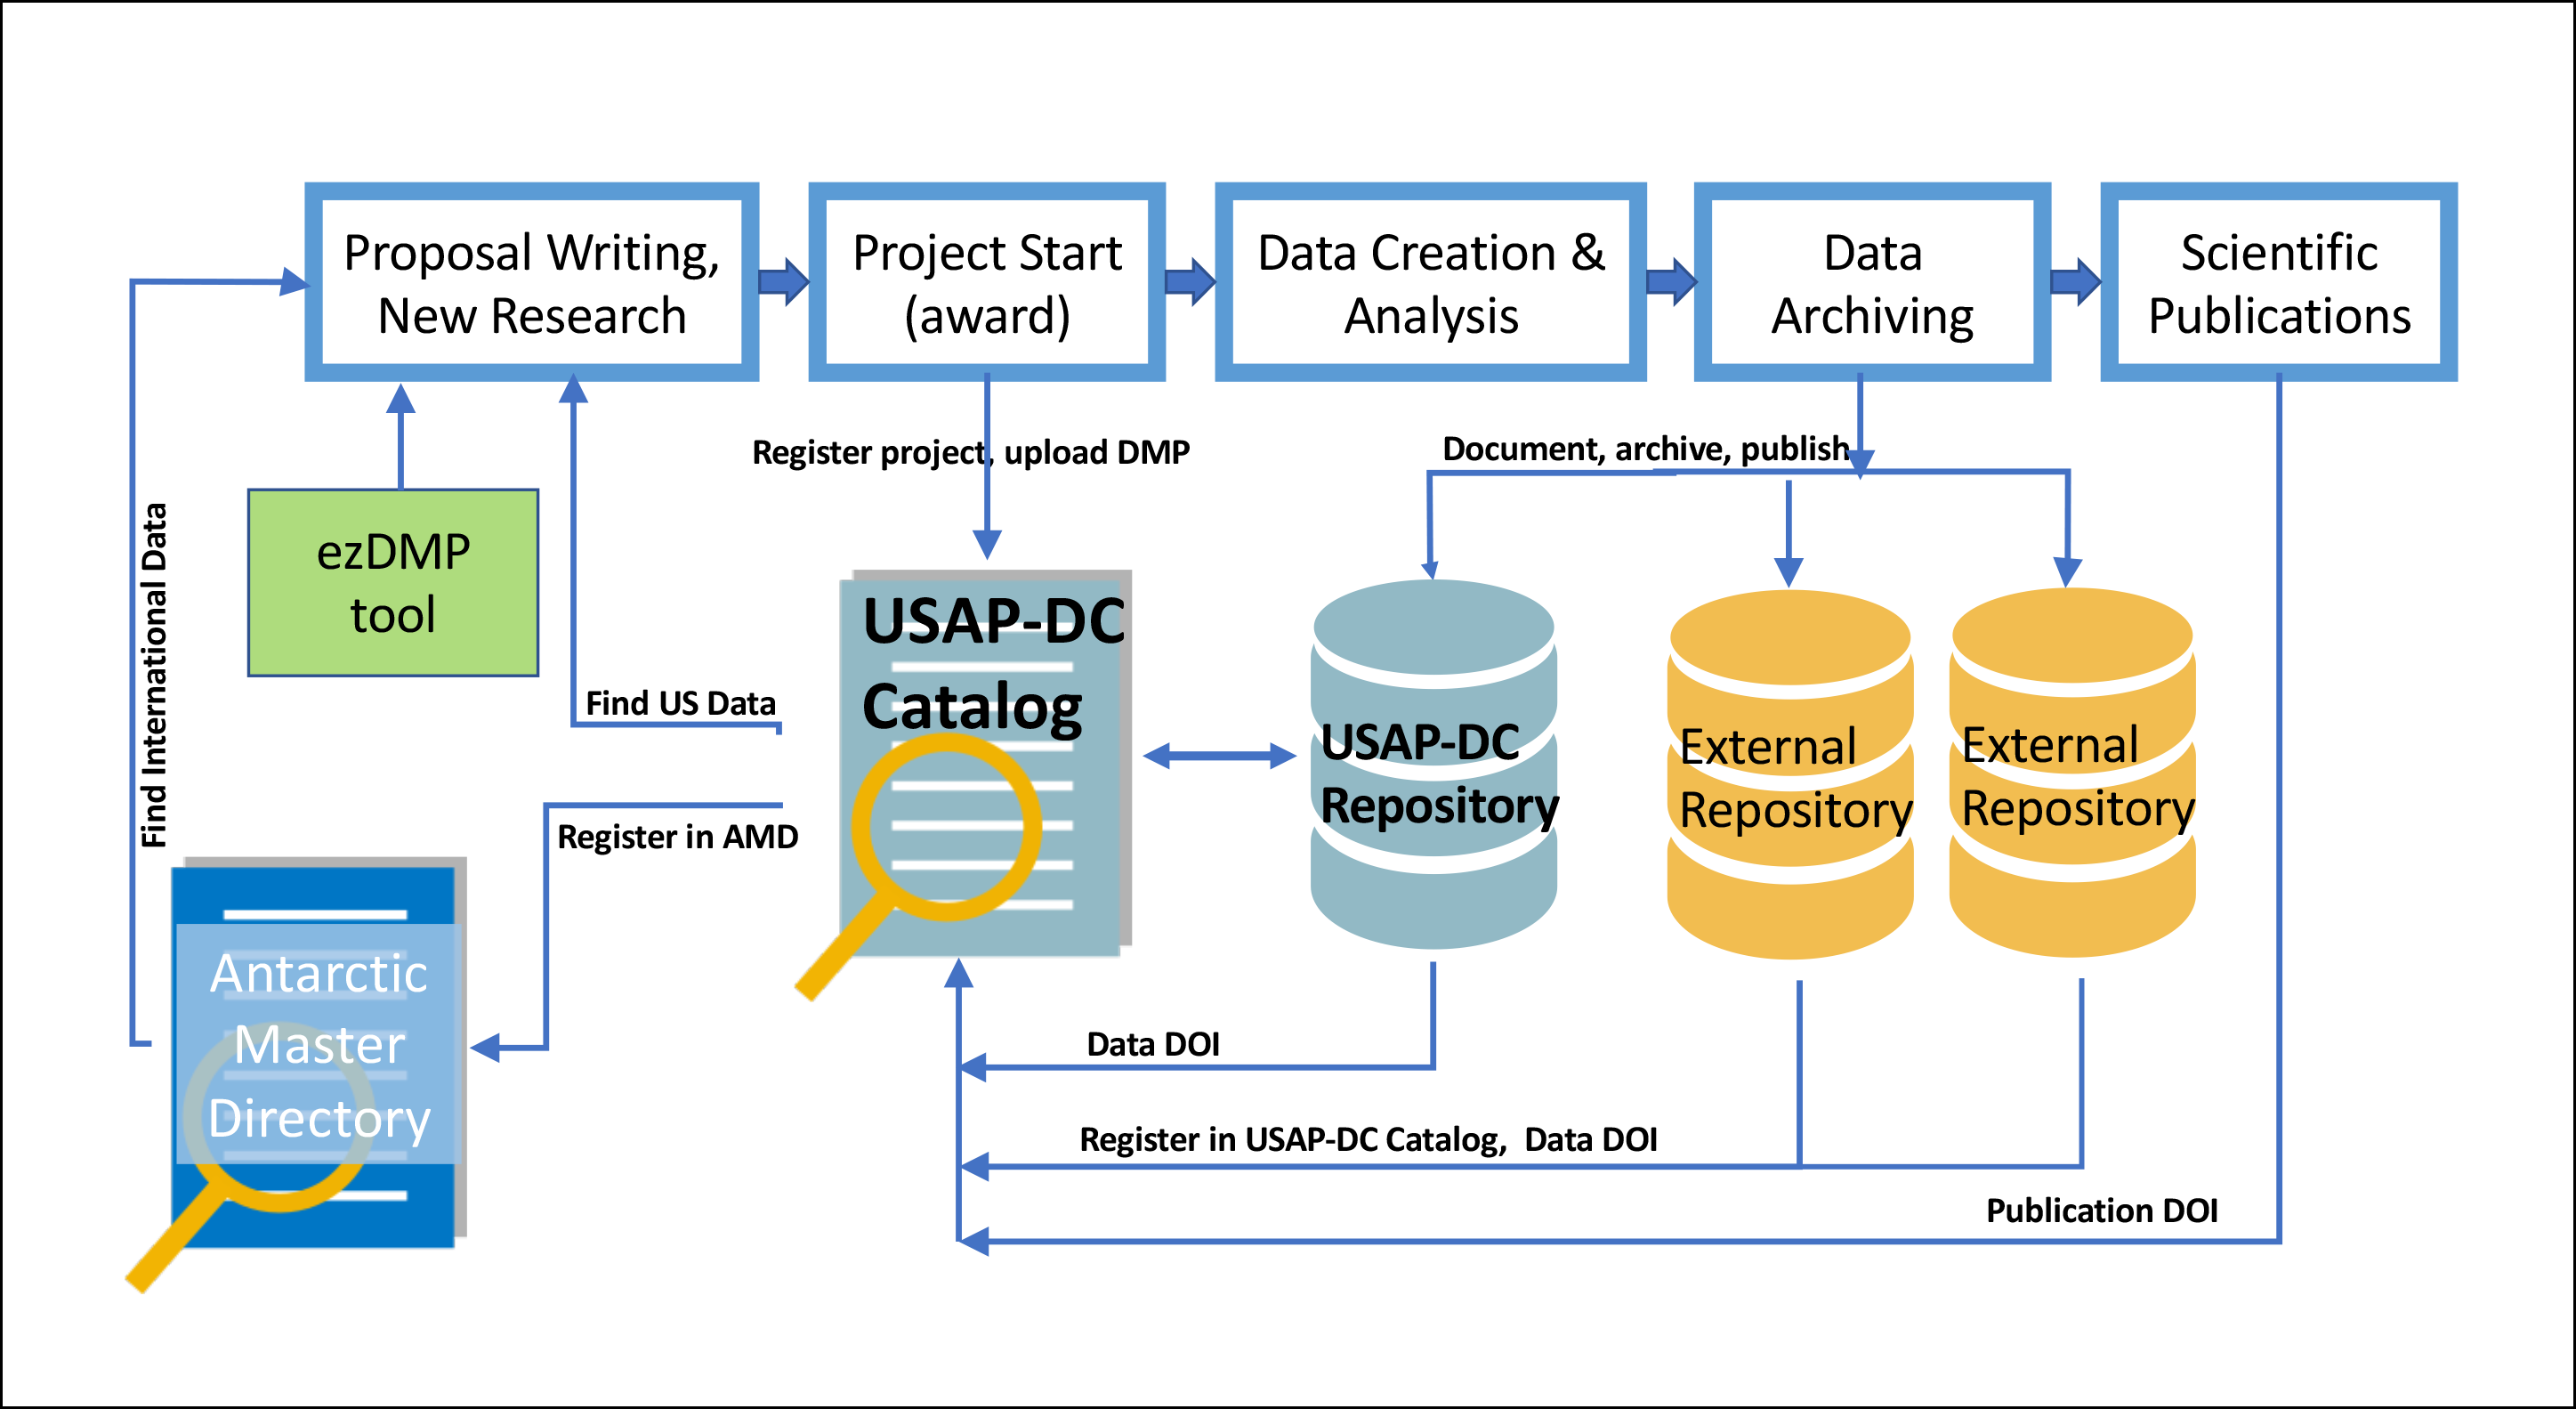 Diagram illustrating life cycle approach to research data management and data services employed by USAP-DC